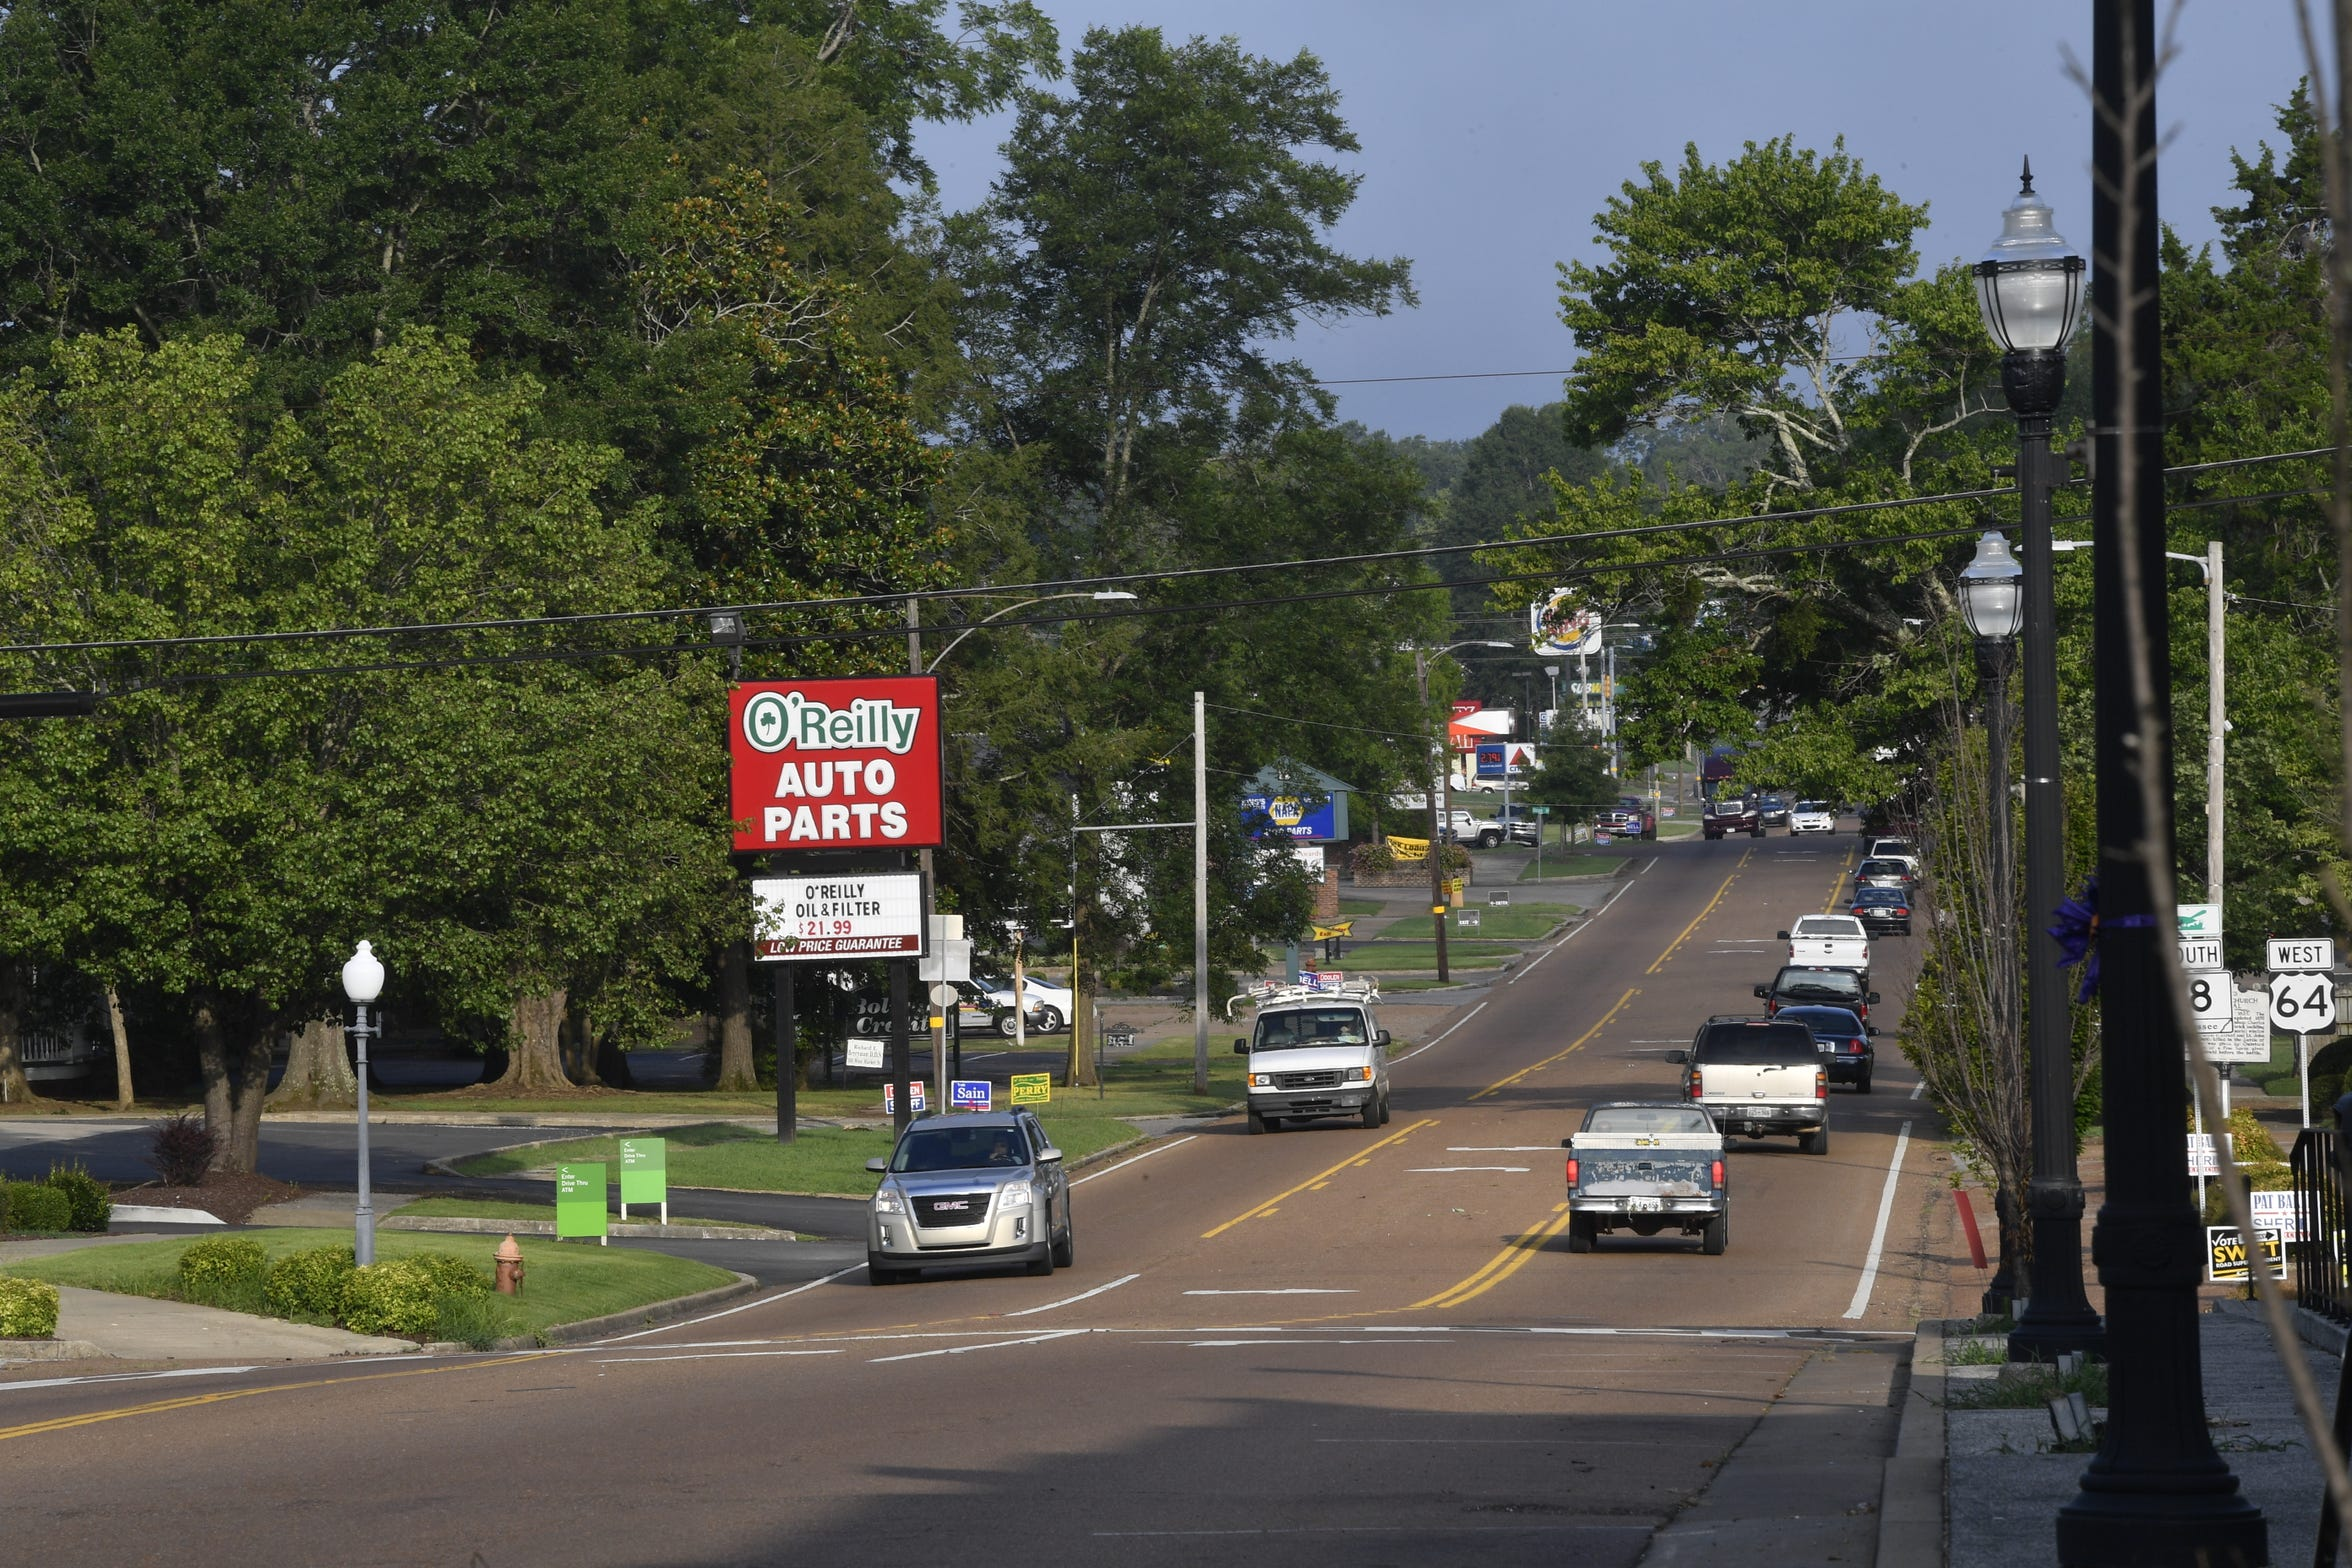 Traffic is light just off the square in Bolivar in Hardeman County Tuesday July 17, 2018, in Bolivar, Tenn.